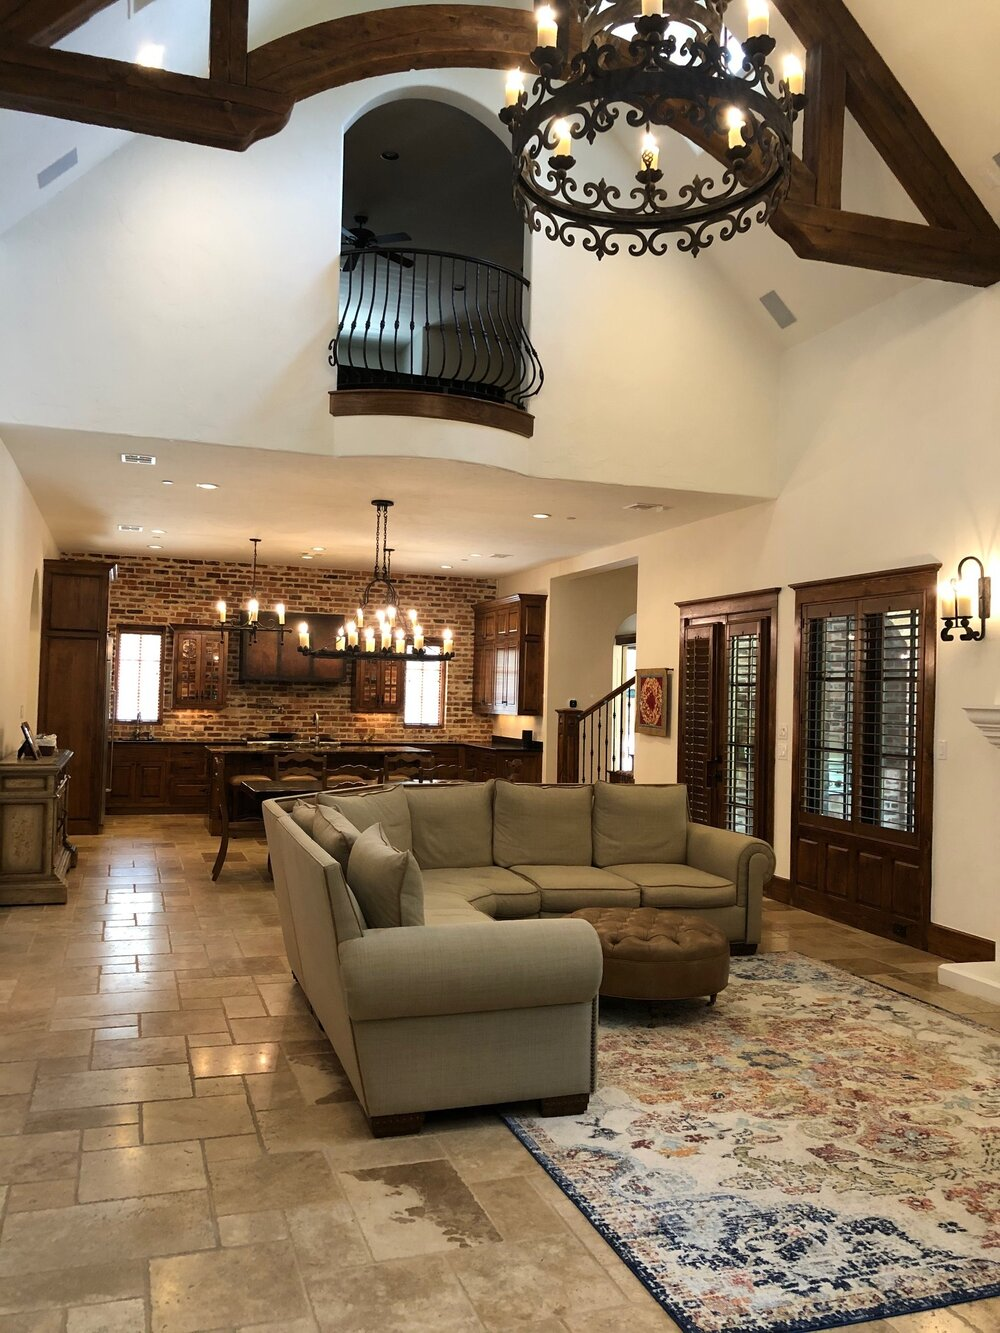 Tuscan style great room with travertine floors, dark doors and trim has been lightened up with a creamy white wall and ceiling paint.